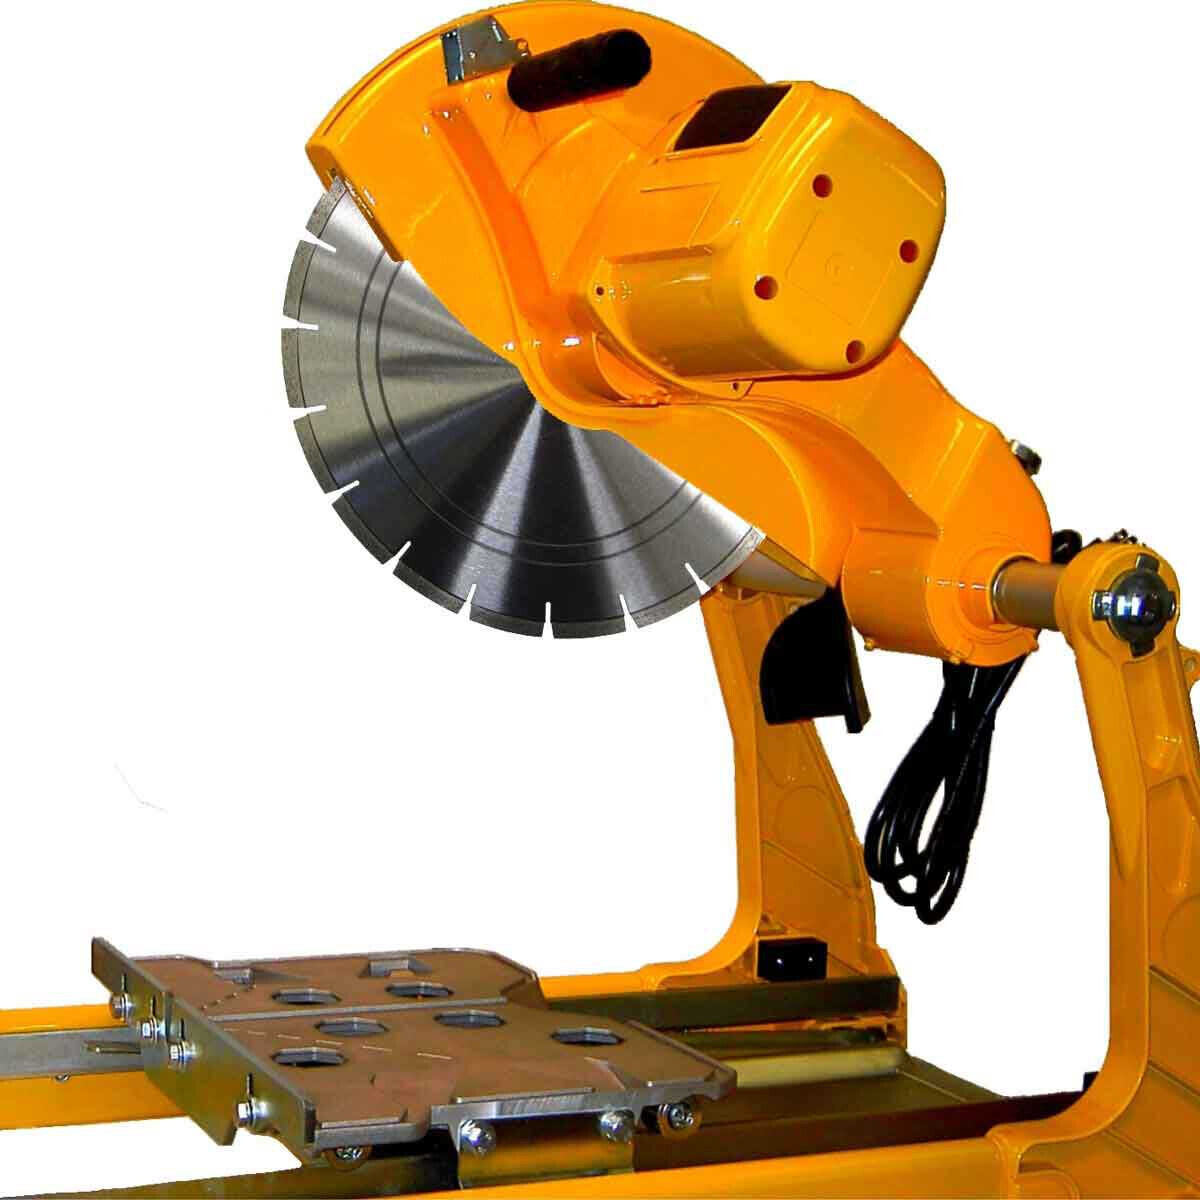 Multiquip MP3 Compact Masonry Saw